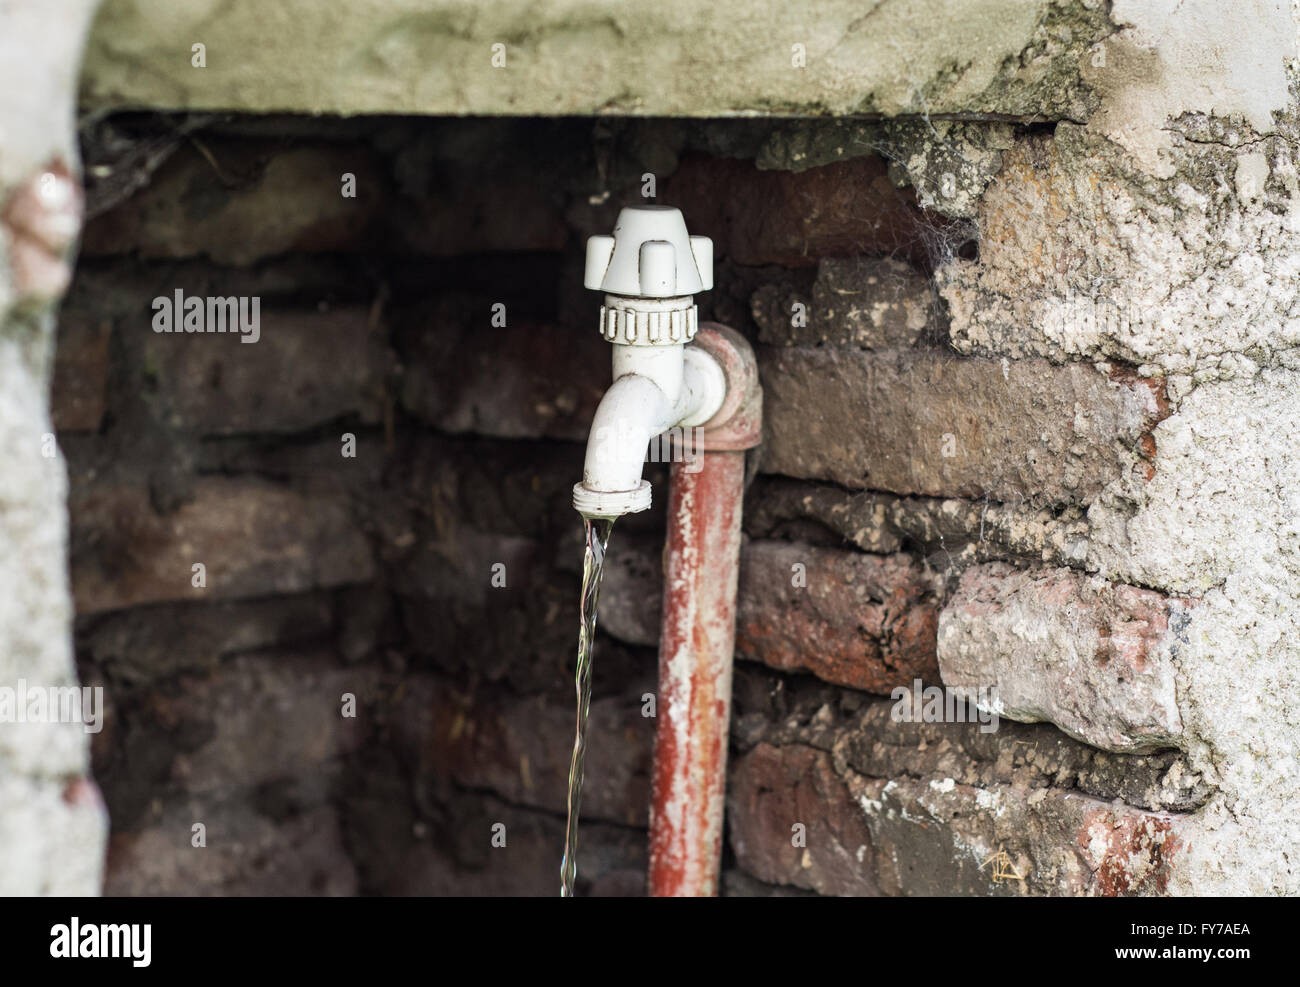 Old Cold Water Tap Faucet Stock Photos & Old Cold Water Tap Faucet ...